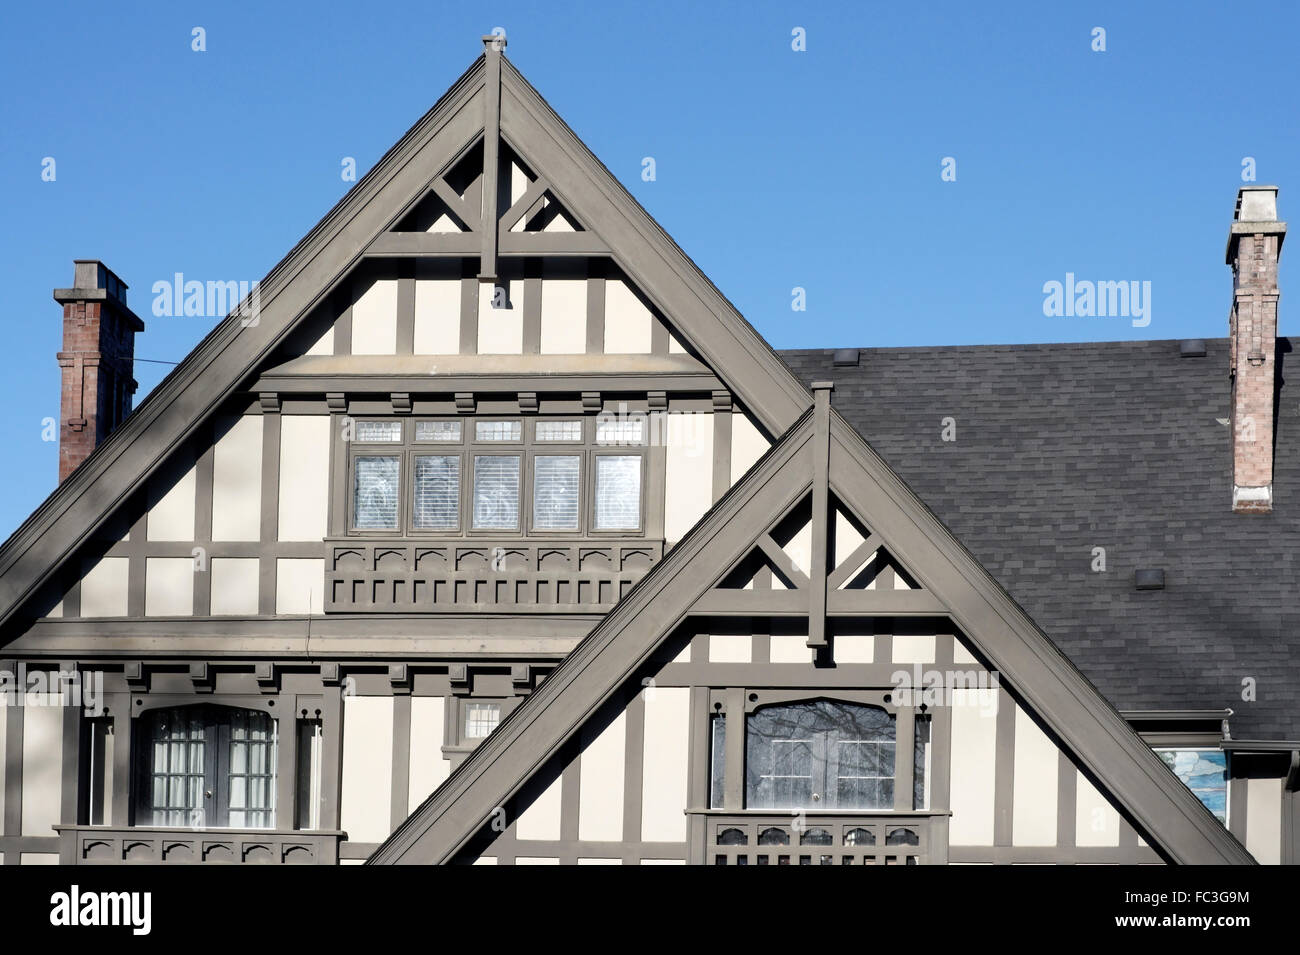 facade of a large tudor style house in shaughnessy neighbourhood